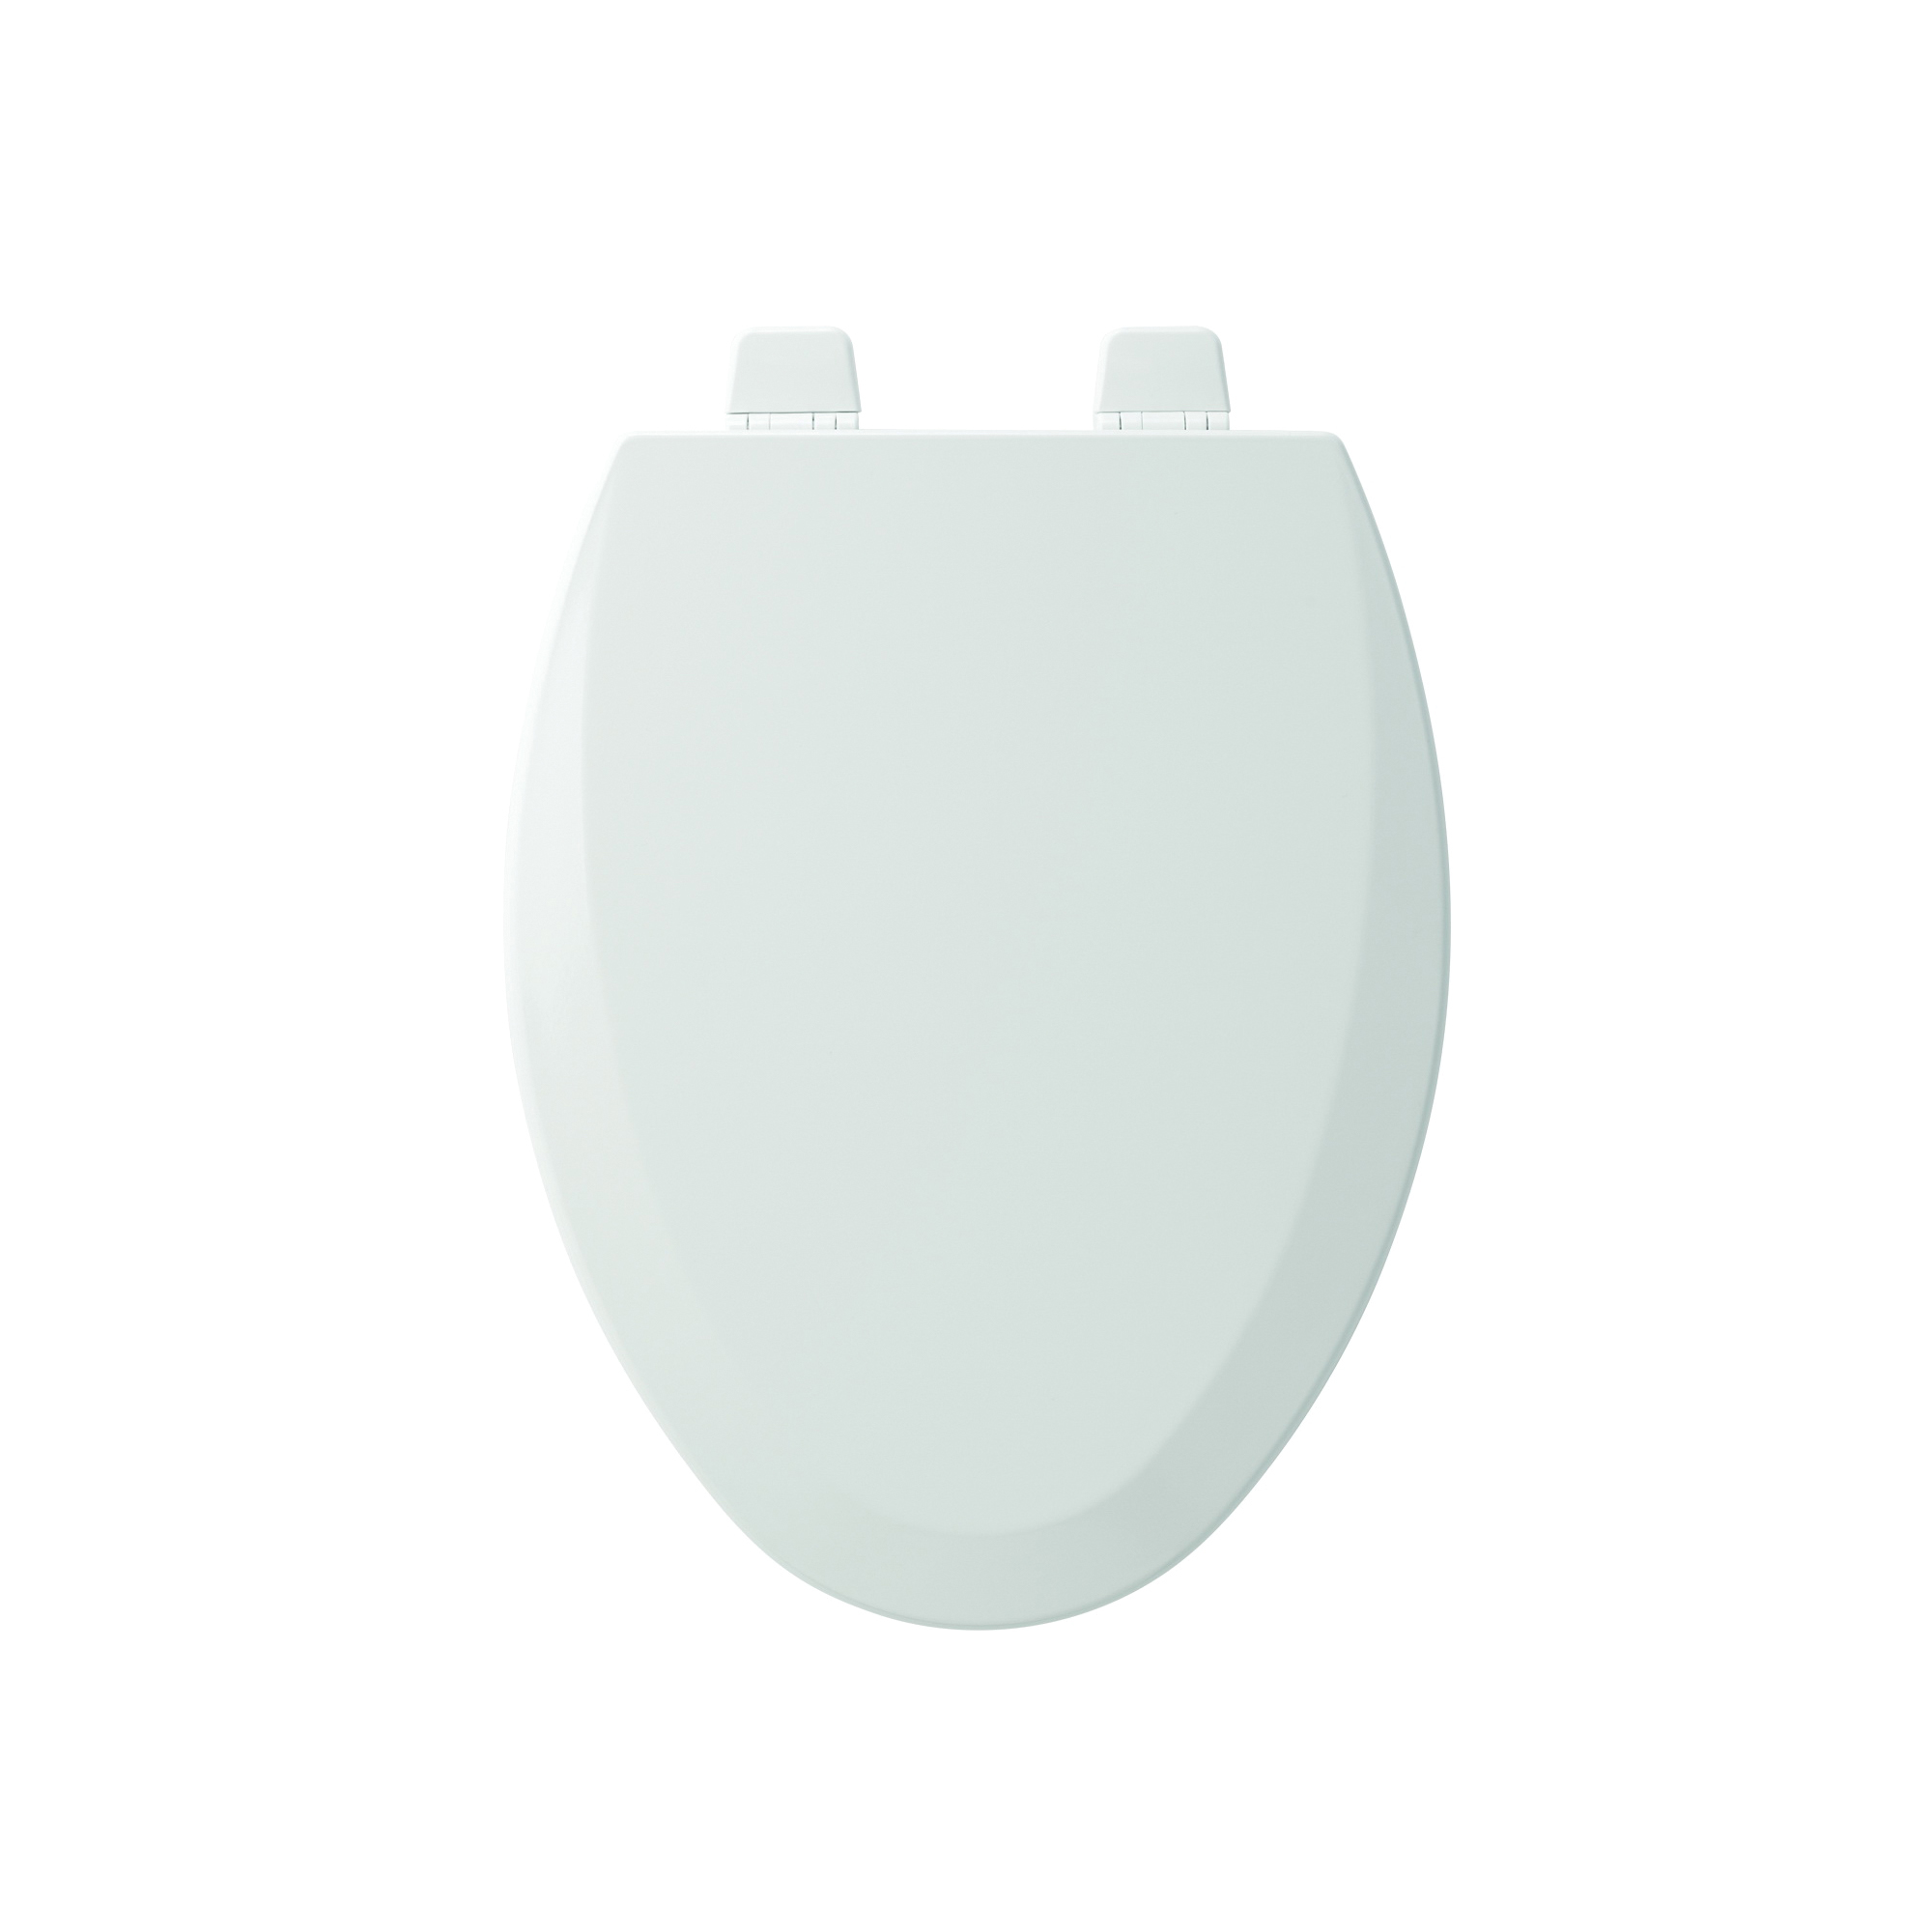 Stupendous Consolidated Supply Co Elongated Toilet Seats Machost Co Dining Chair Design Ideas Machostcouk